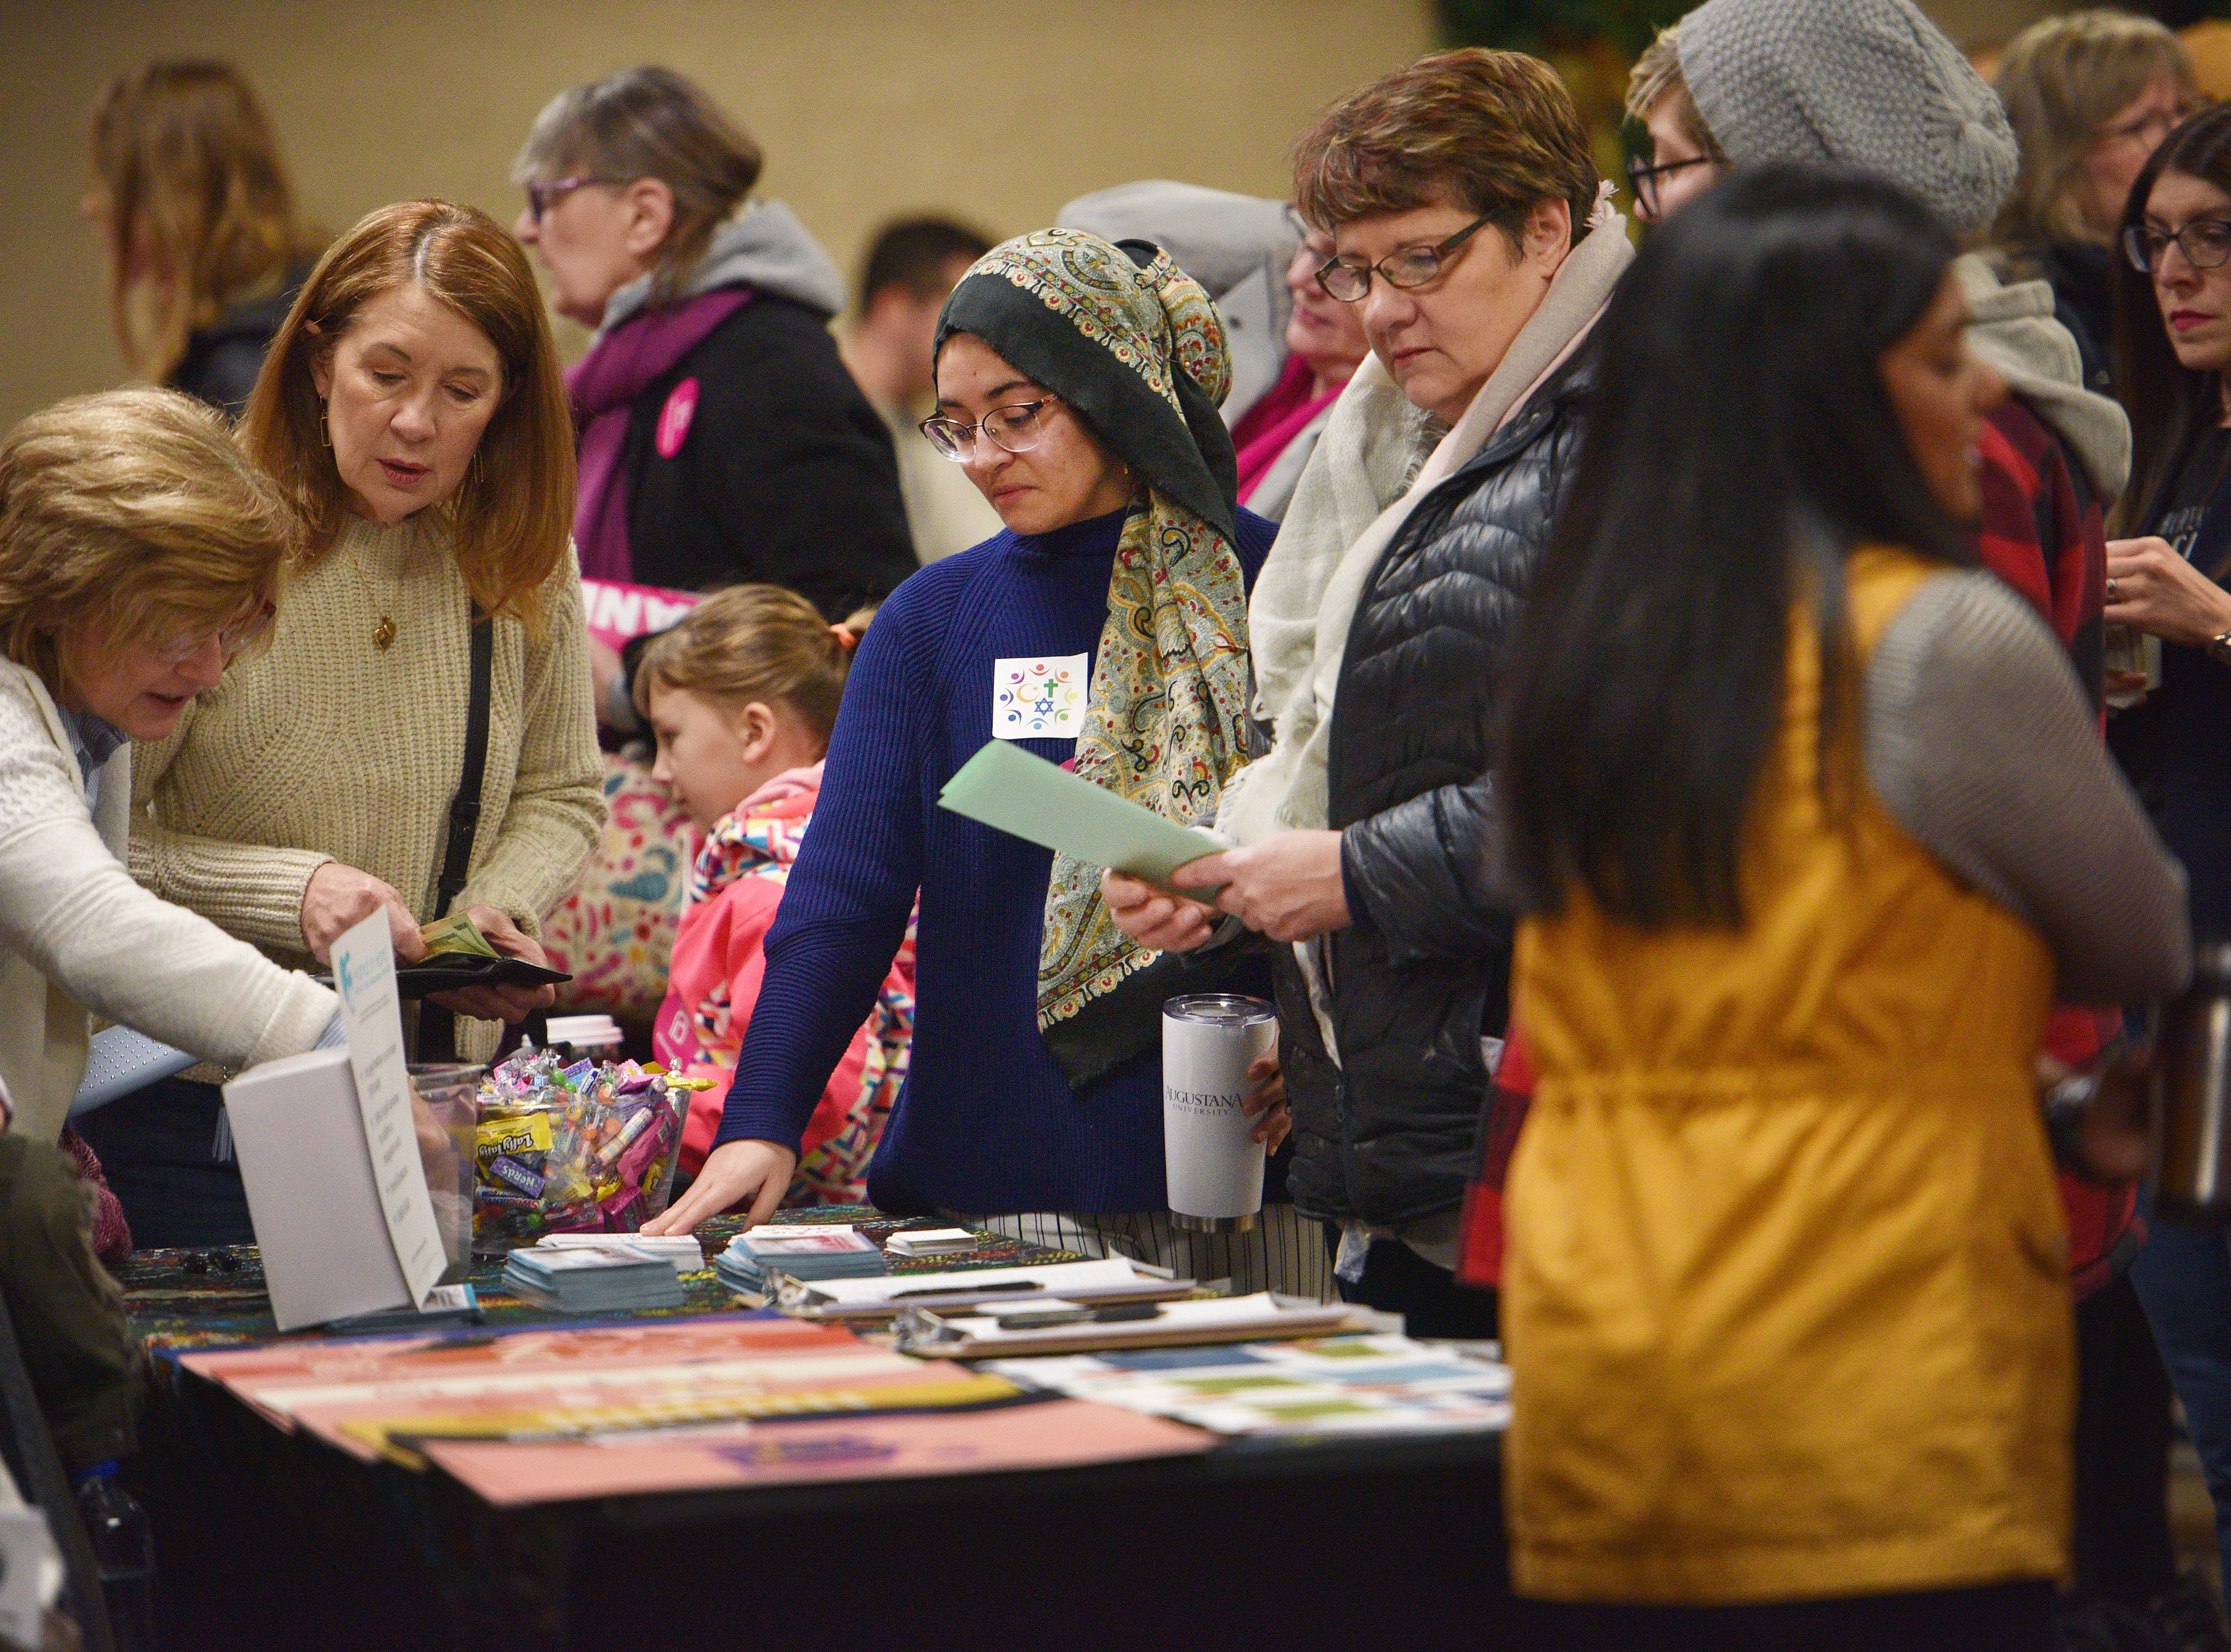 People look at different booths at the Women's March Saturday, Jan. 19, at the Downtown Sioux Falls Holiday Inn-City Centre in Sioux Falls.